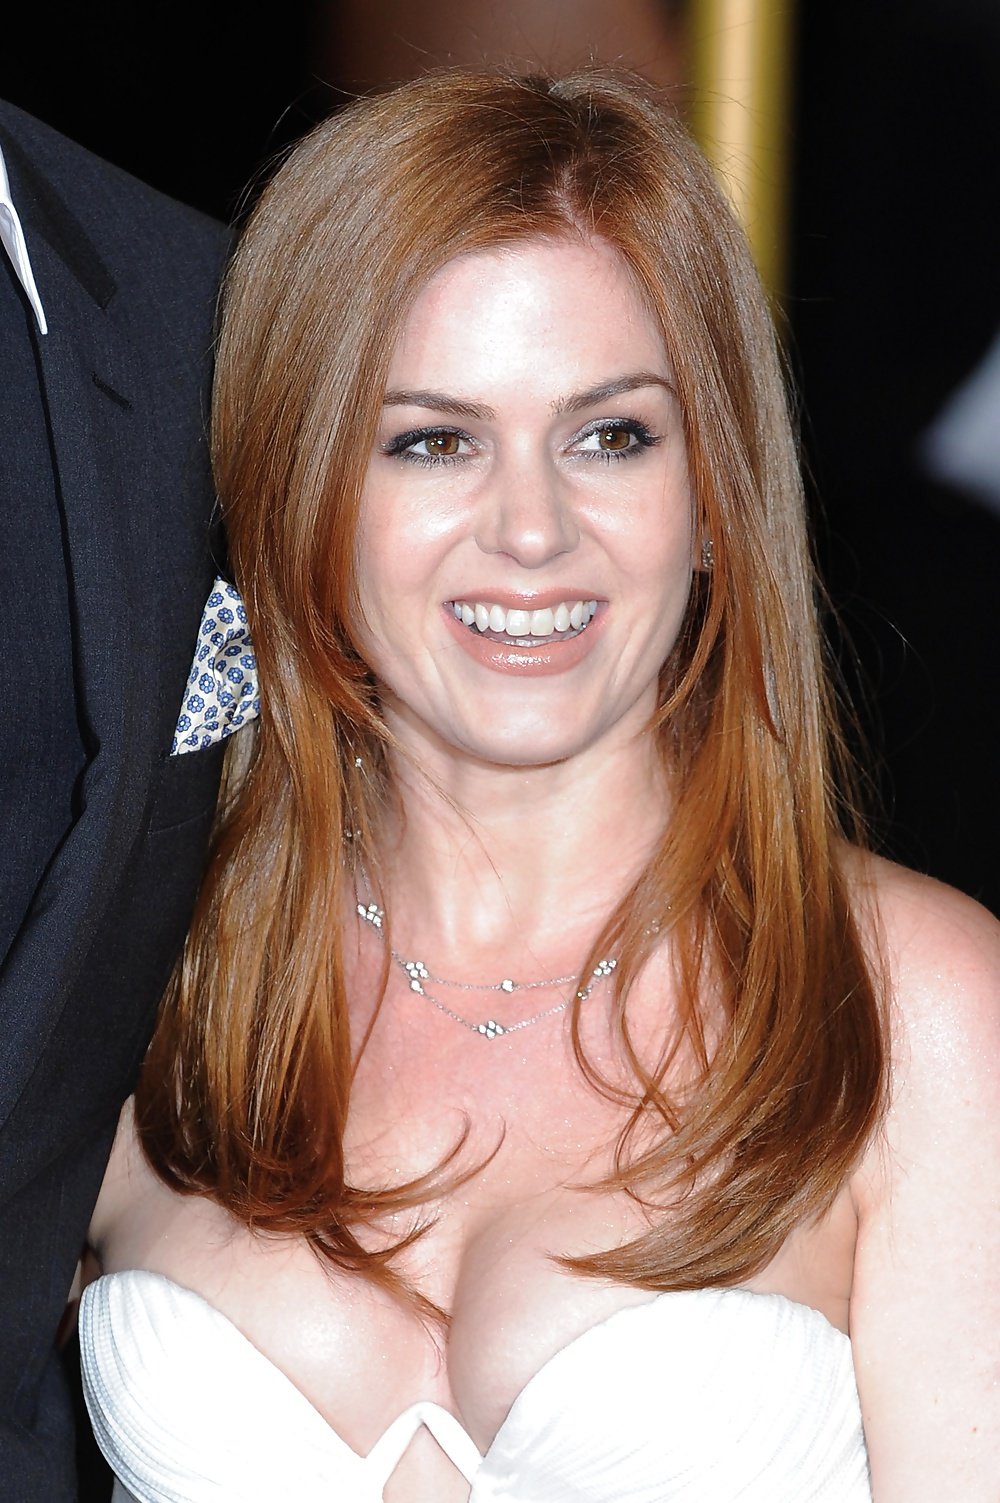 Isla fisher belly button piercing, naked male models photos for women